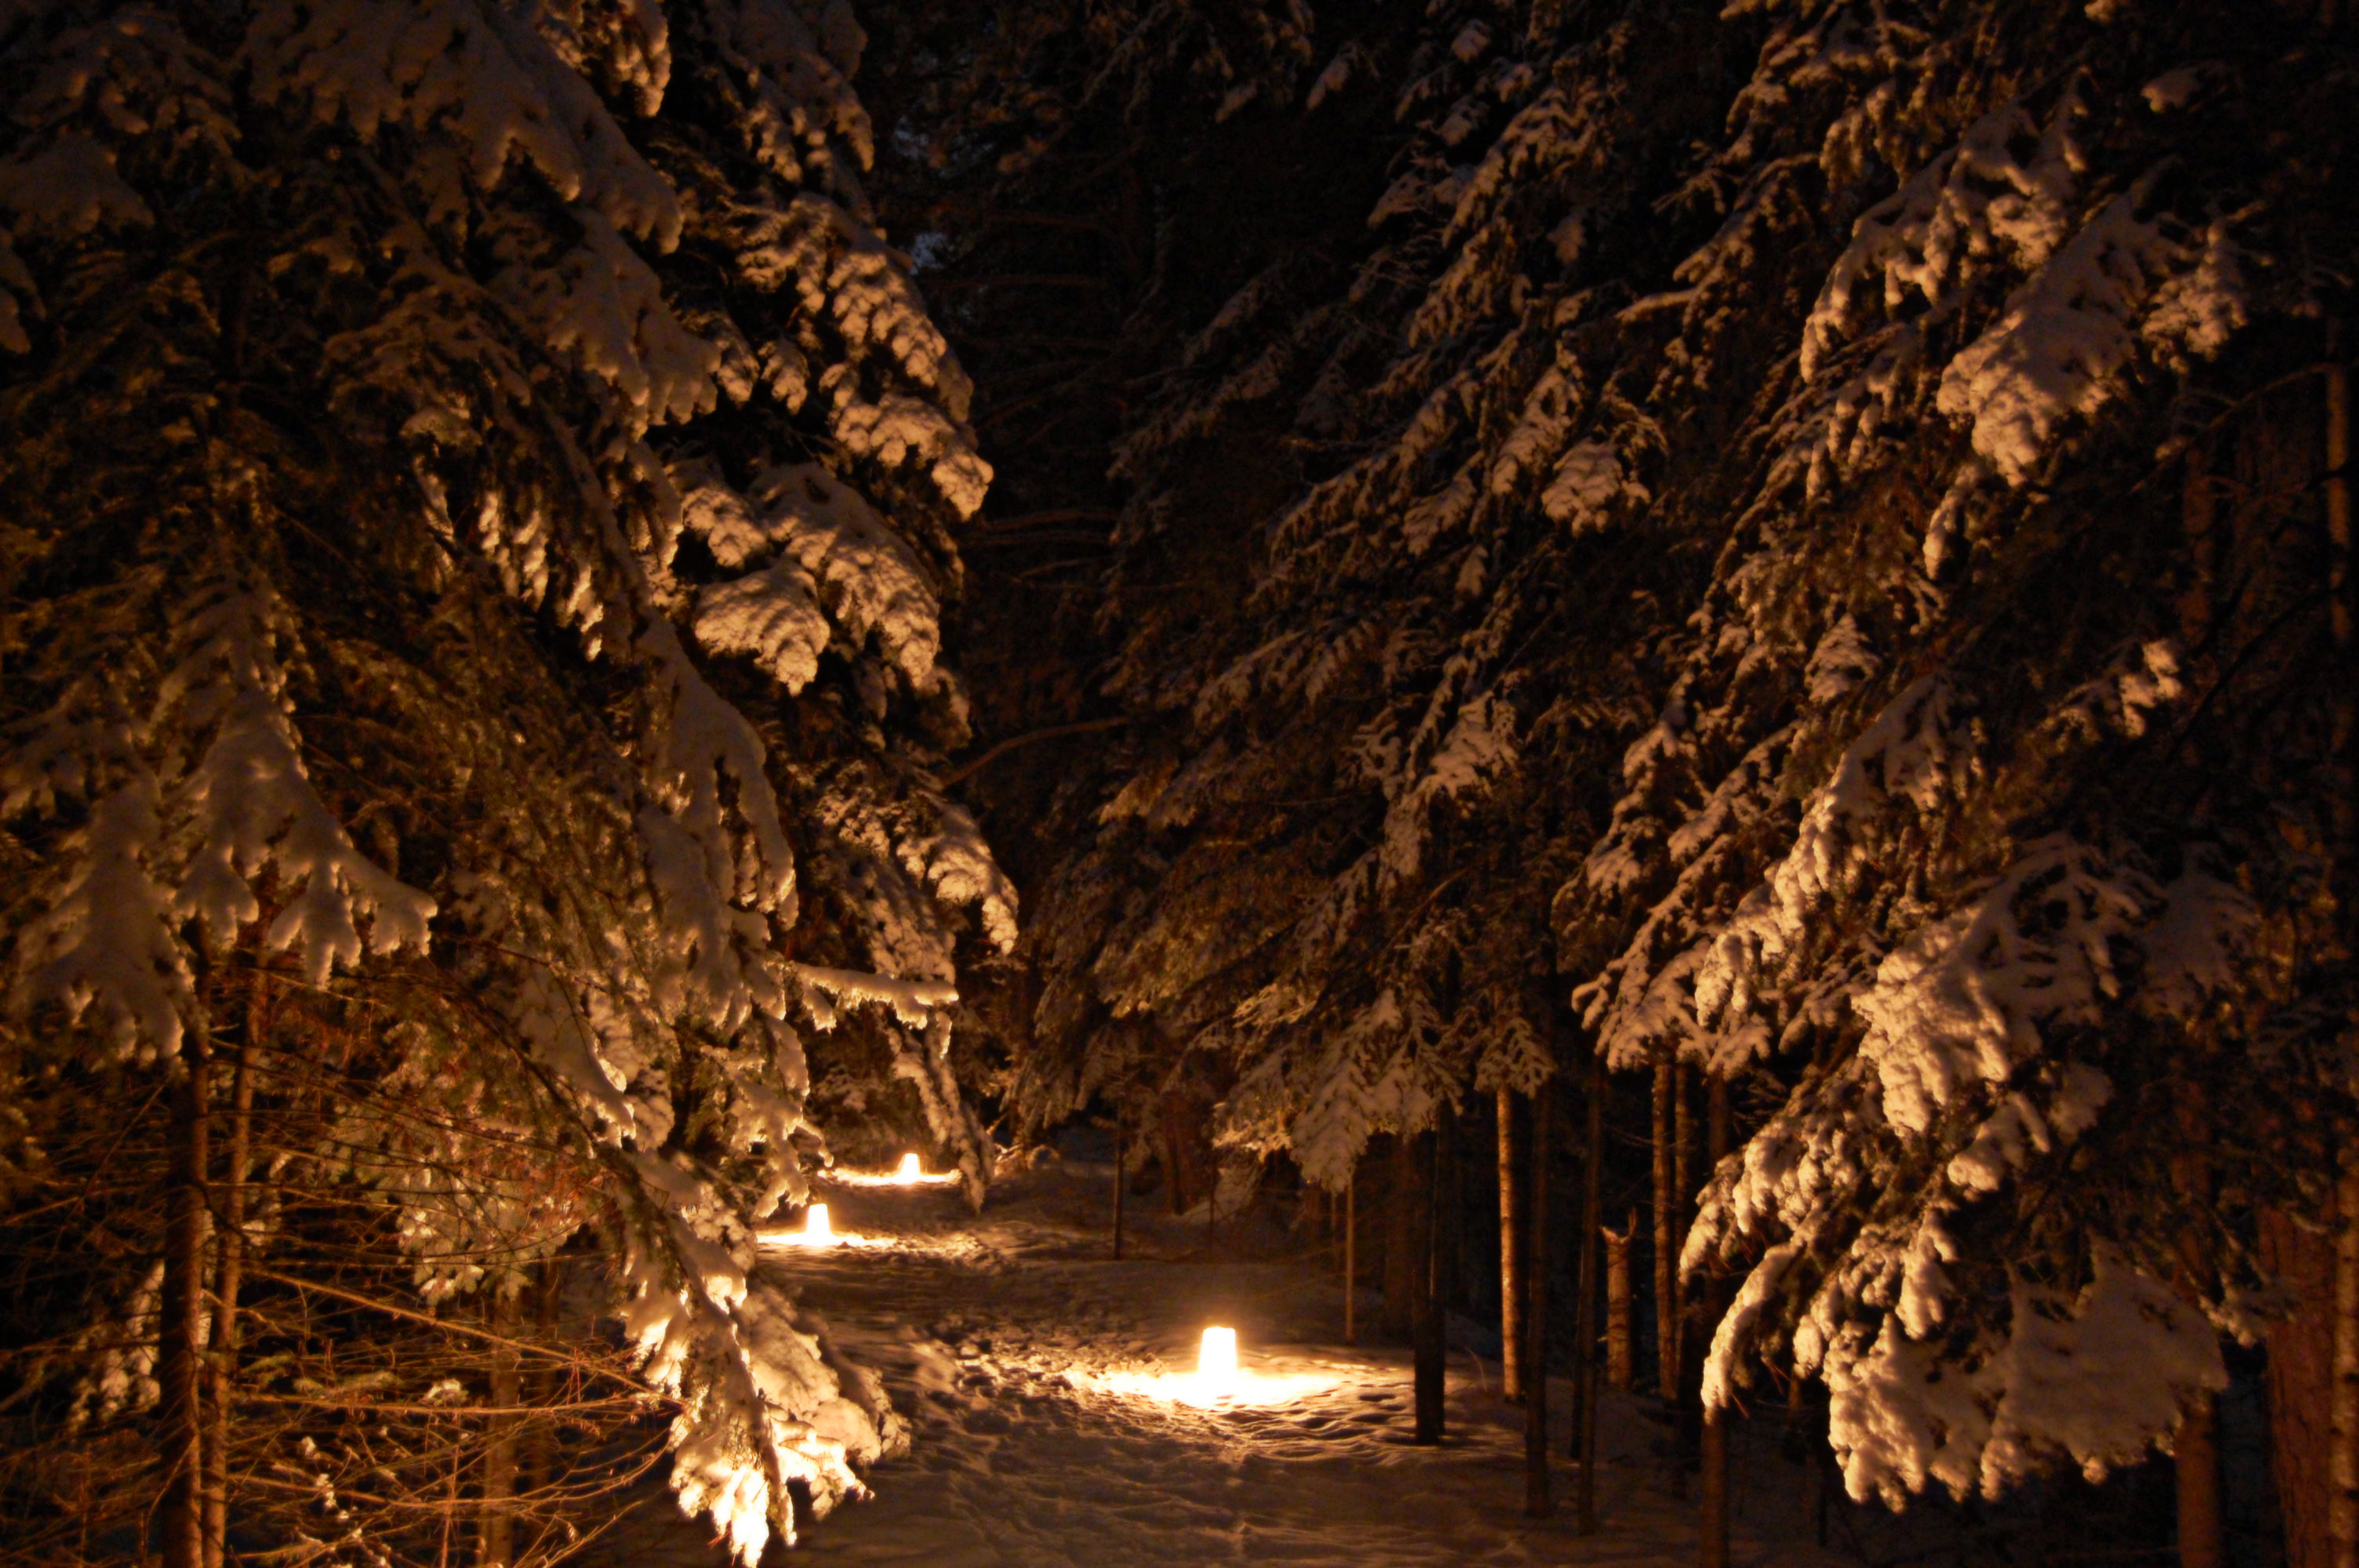 A path lit by candles at night.